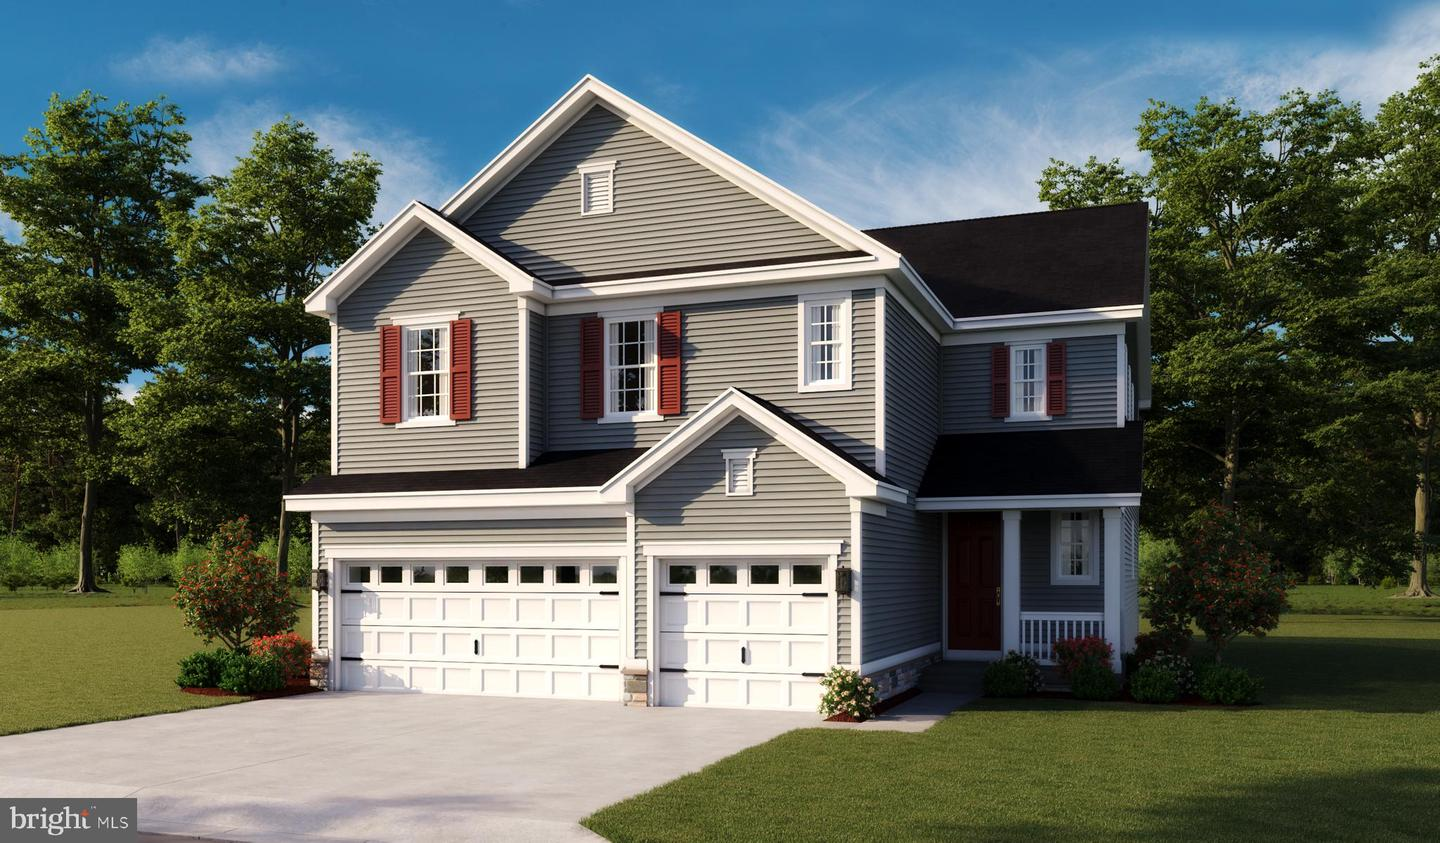 Single Family Homes için Satış at District Heights, Maryland 20747 Amerika Birleşik Devletleri